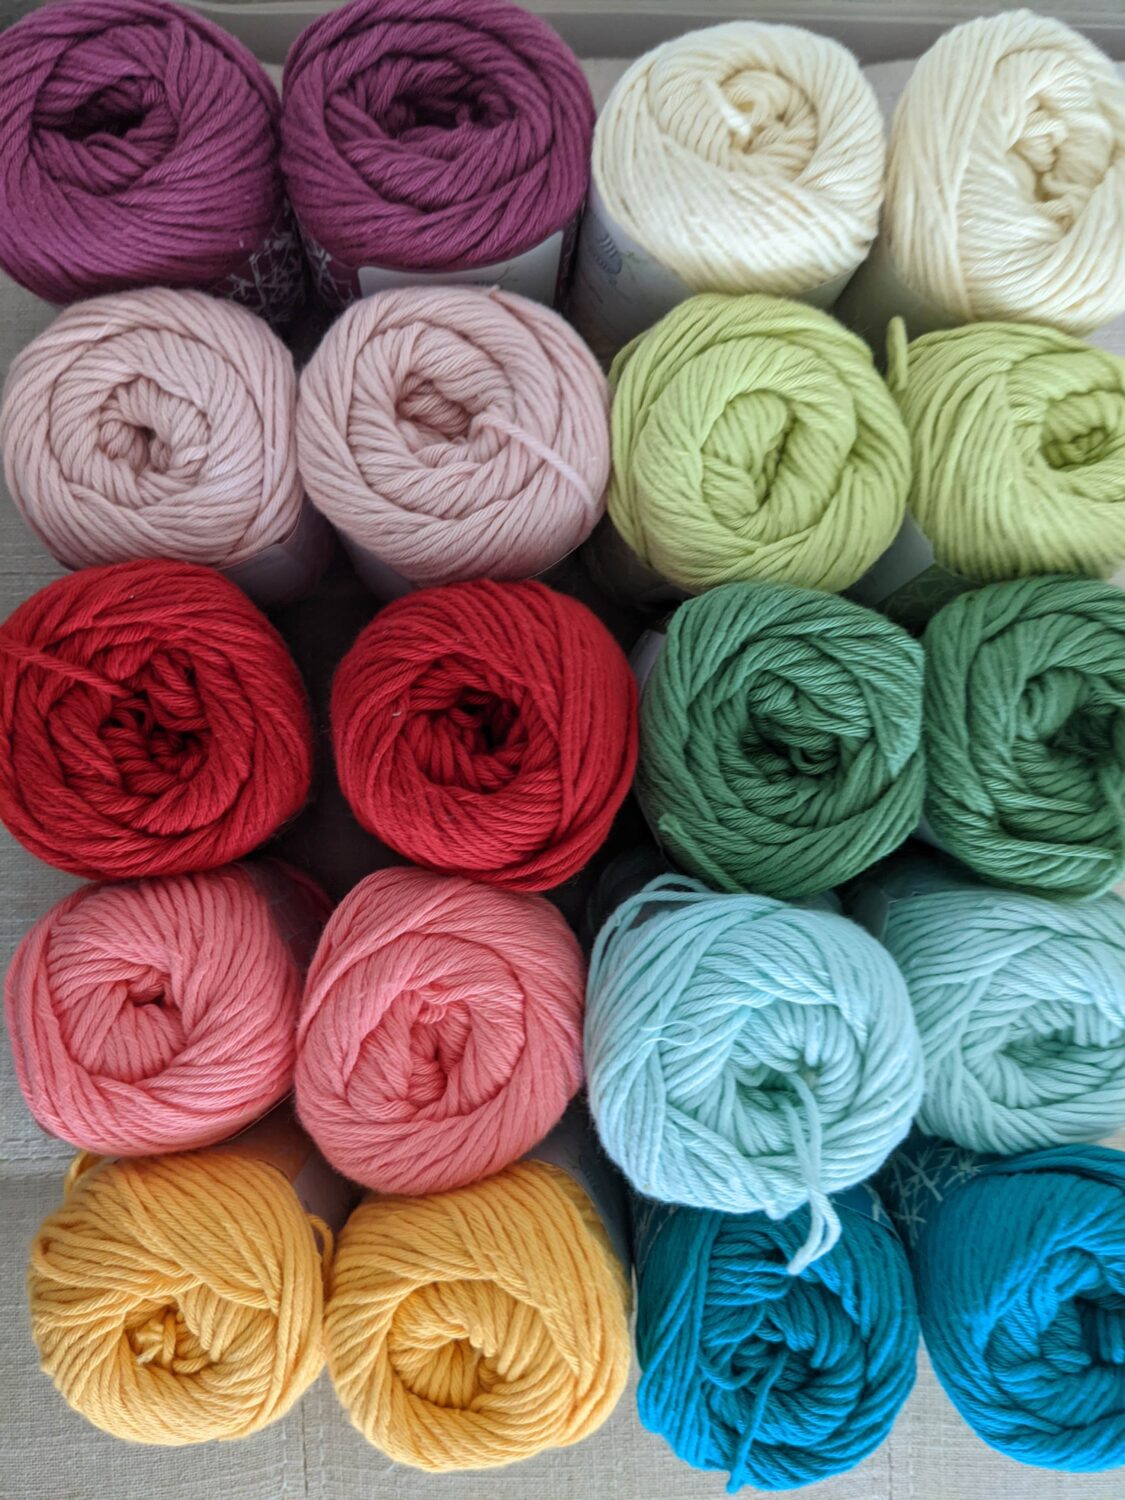 A picture with the 10 colors of mindfulknits yarn from the Zen, Tropical, and Flora bundles.